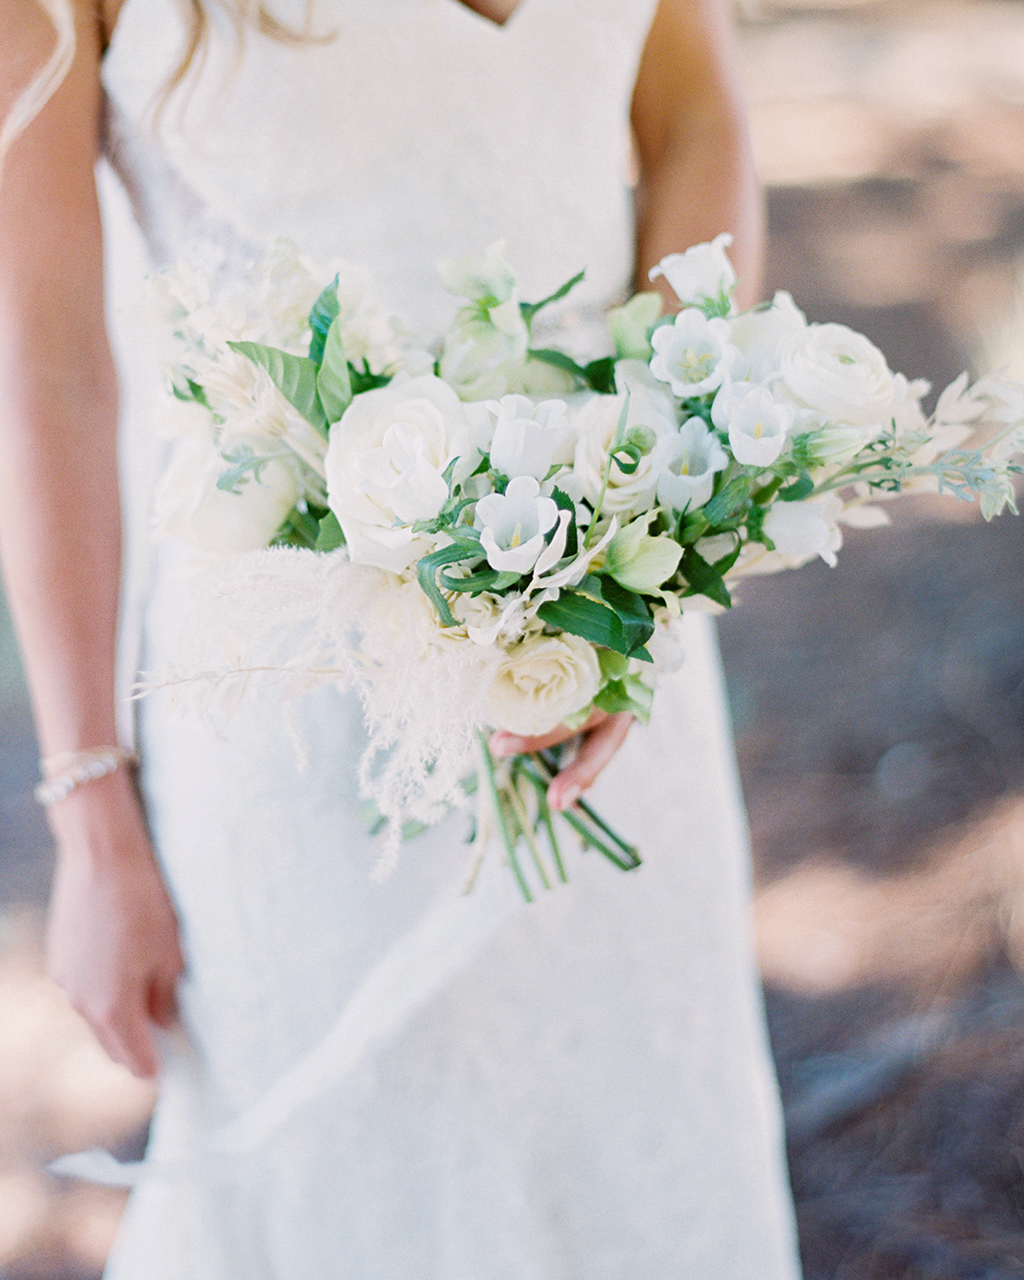 crescent-shaped bouquet white green blooms